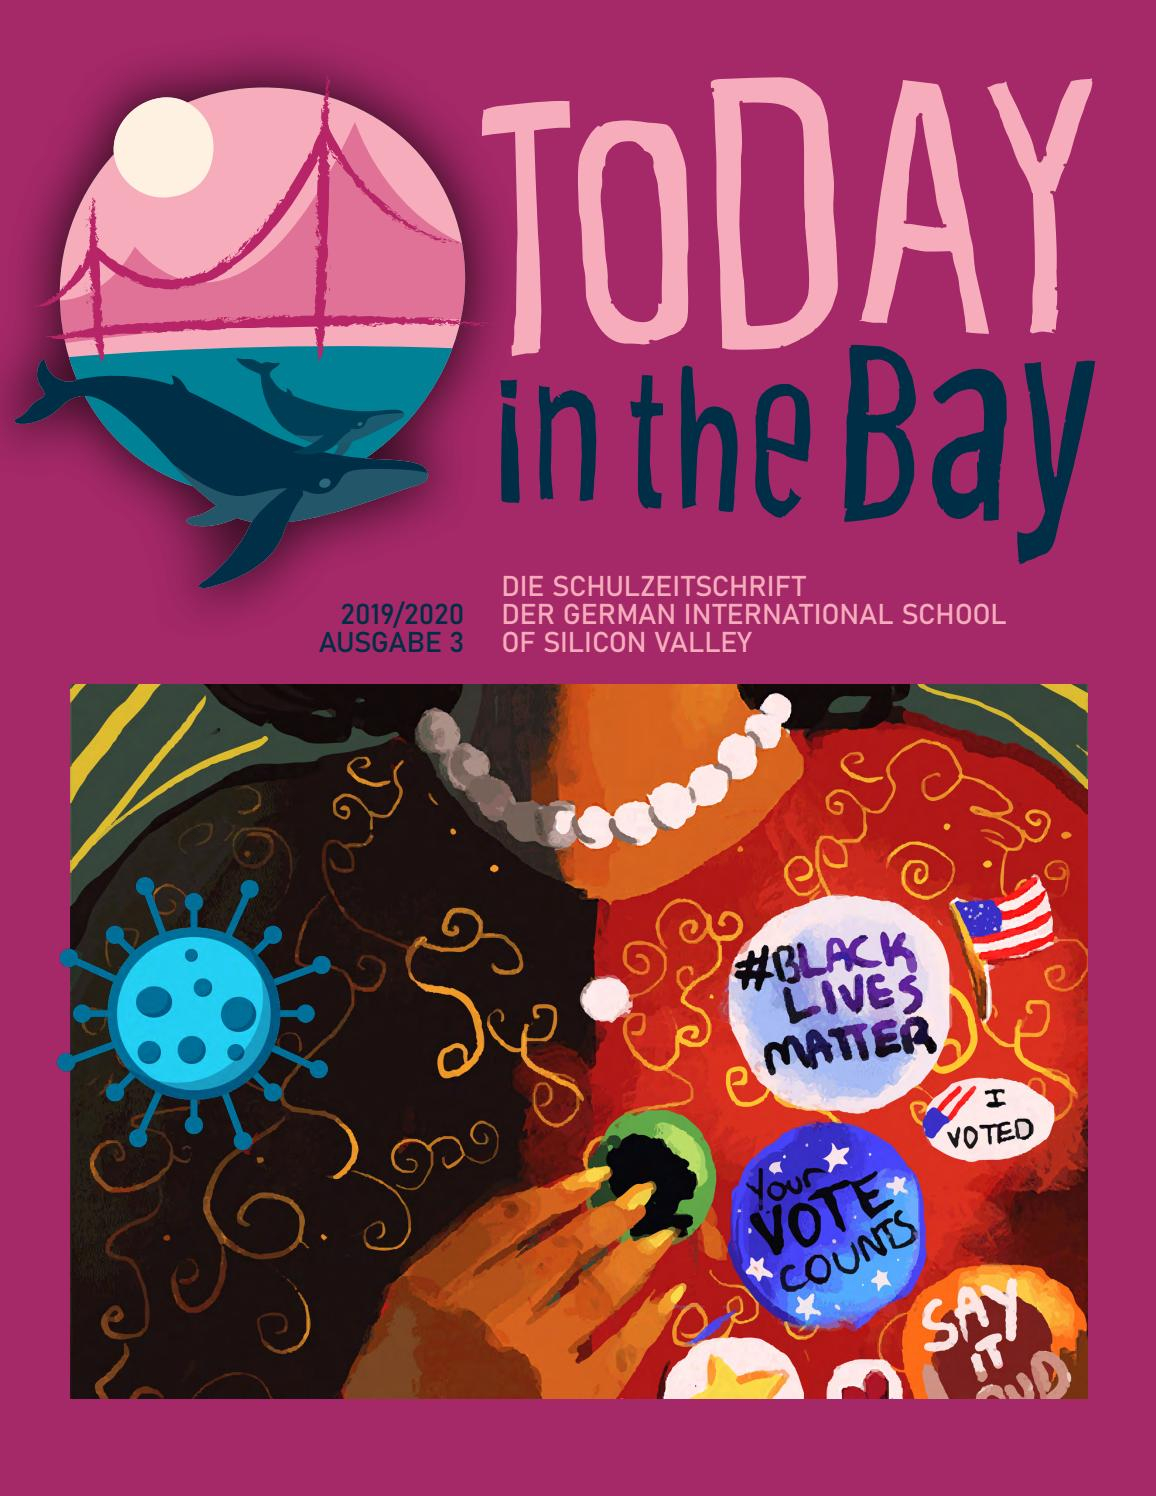 Today In The Bay 3 By German International School Of Silicon Valley Issuu